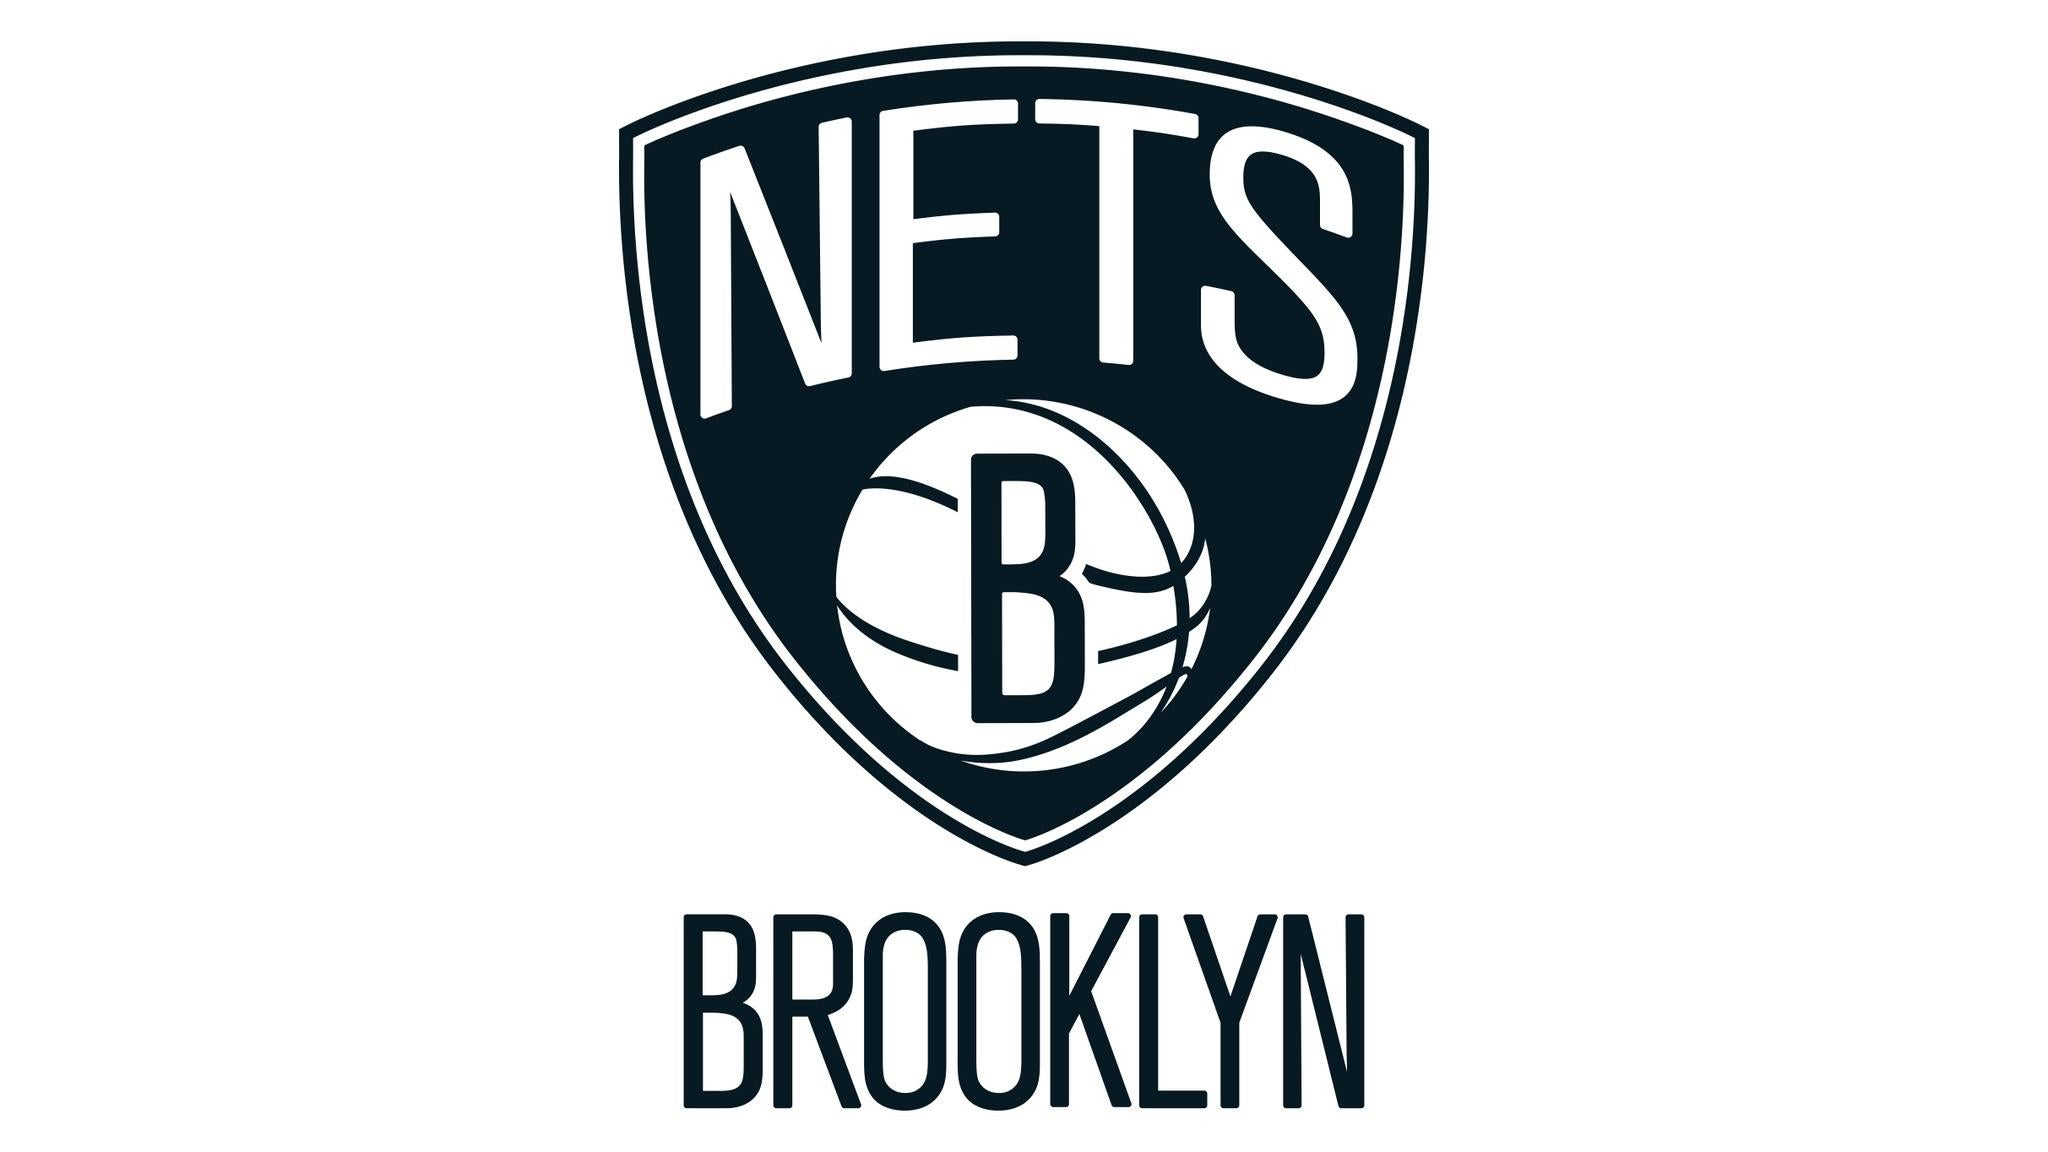 Brooklyn Nets vs. Indiana Pacers at Barclays Center